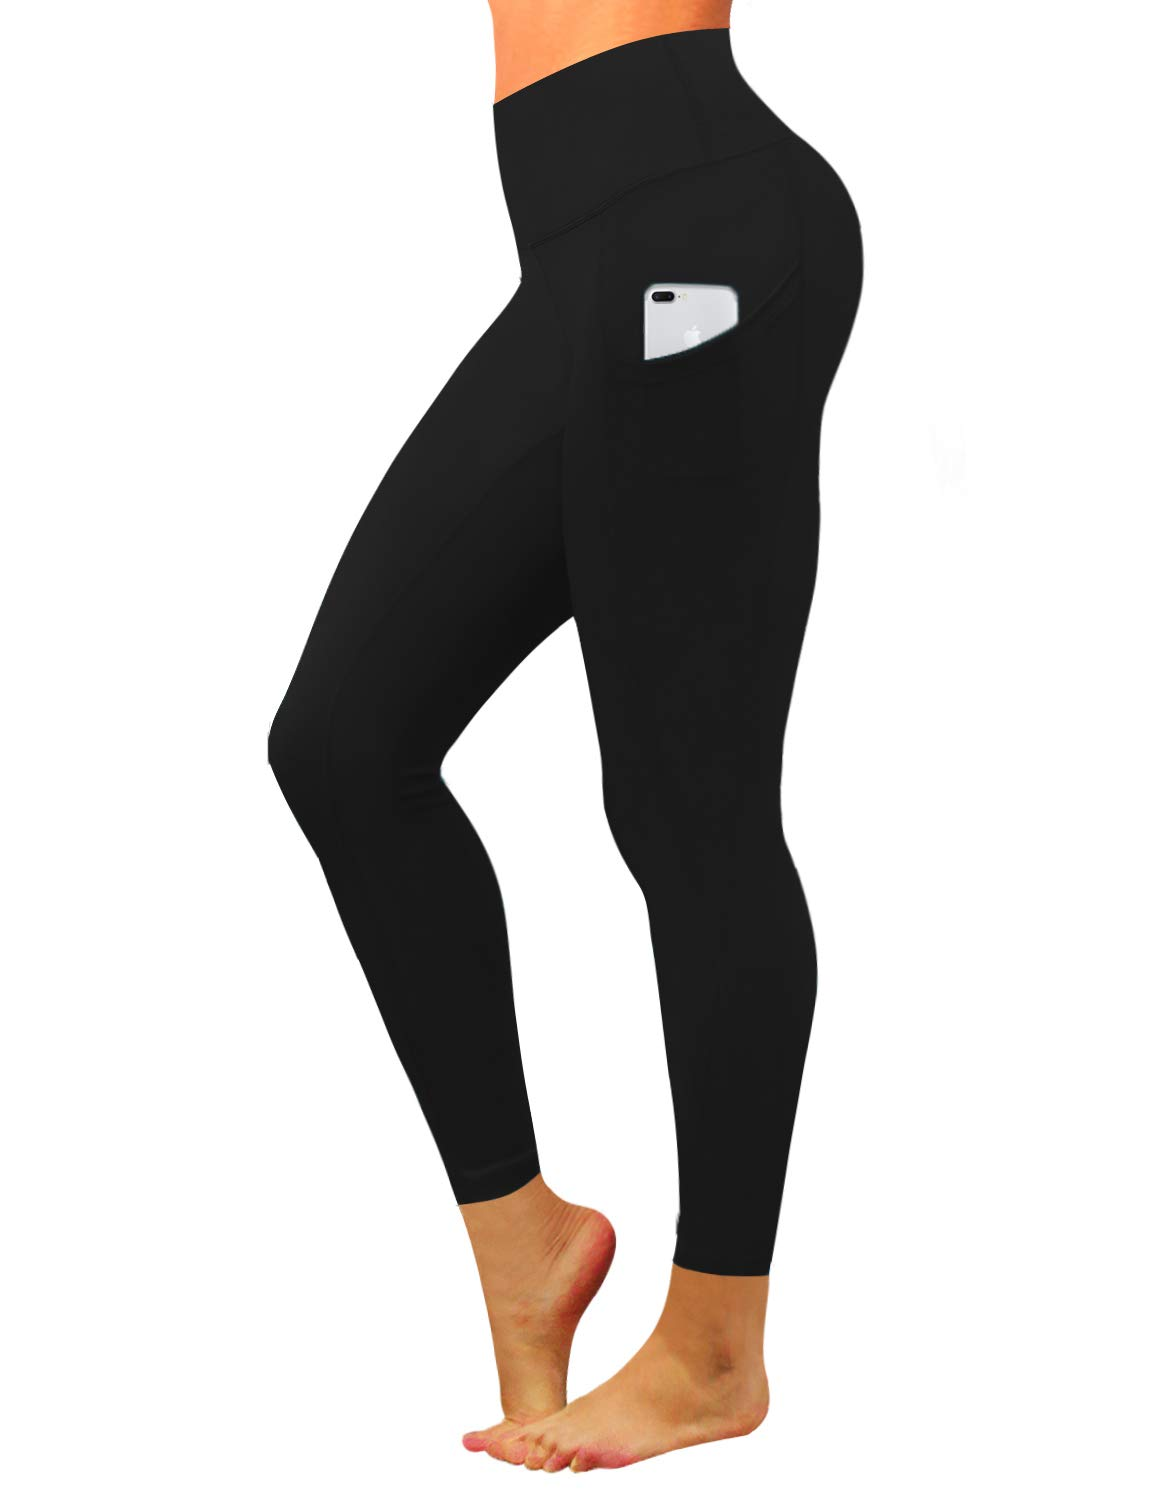 BUBBLELIME High Compression Yoga Pants Out Pocket Running Pants High Waist Tummy Control UPF30+